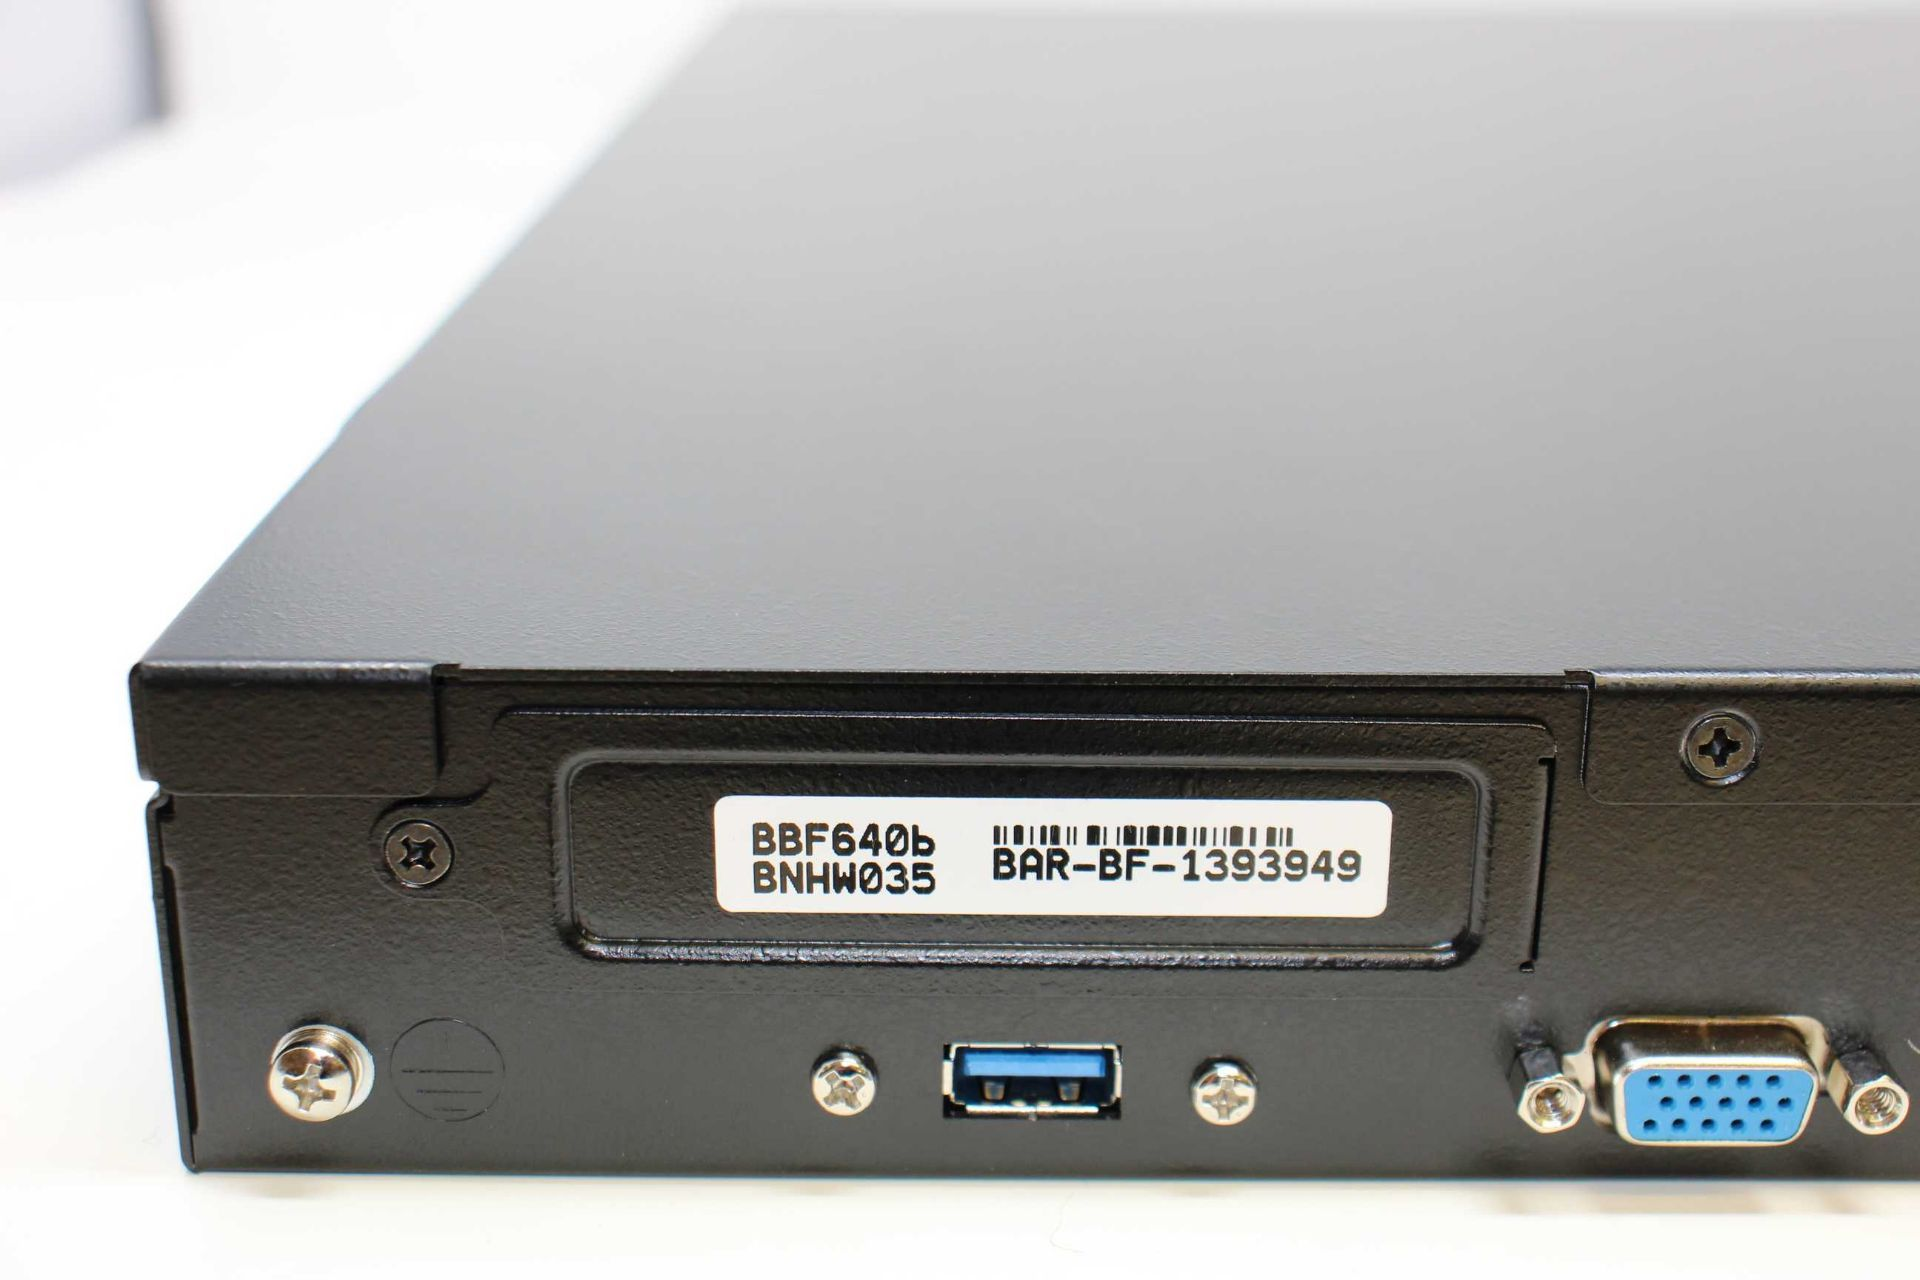 A boxed as new Barracuda Load Balancer ADC 640 (BBF640B BAR-BF-139349) (Rails, cables and manual - Image 13 of 18